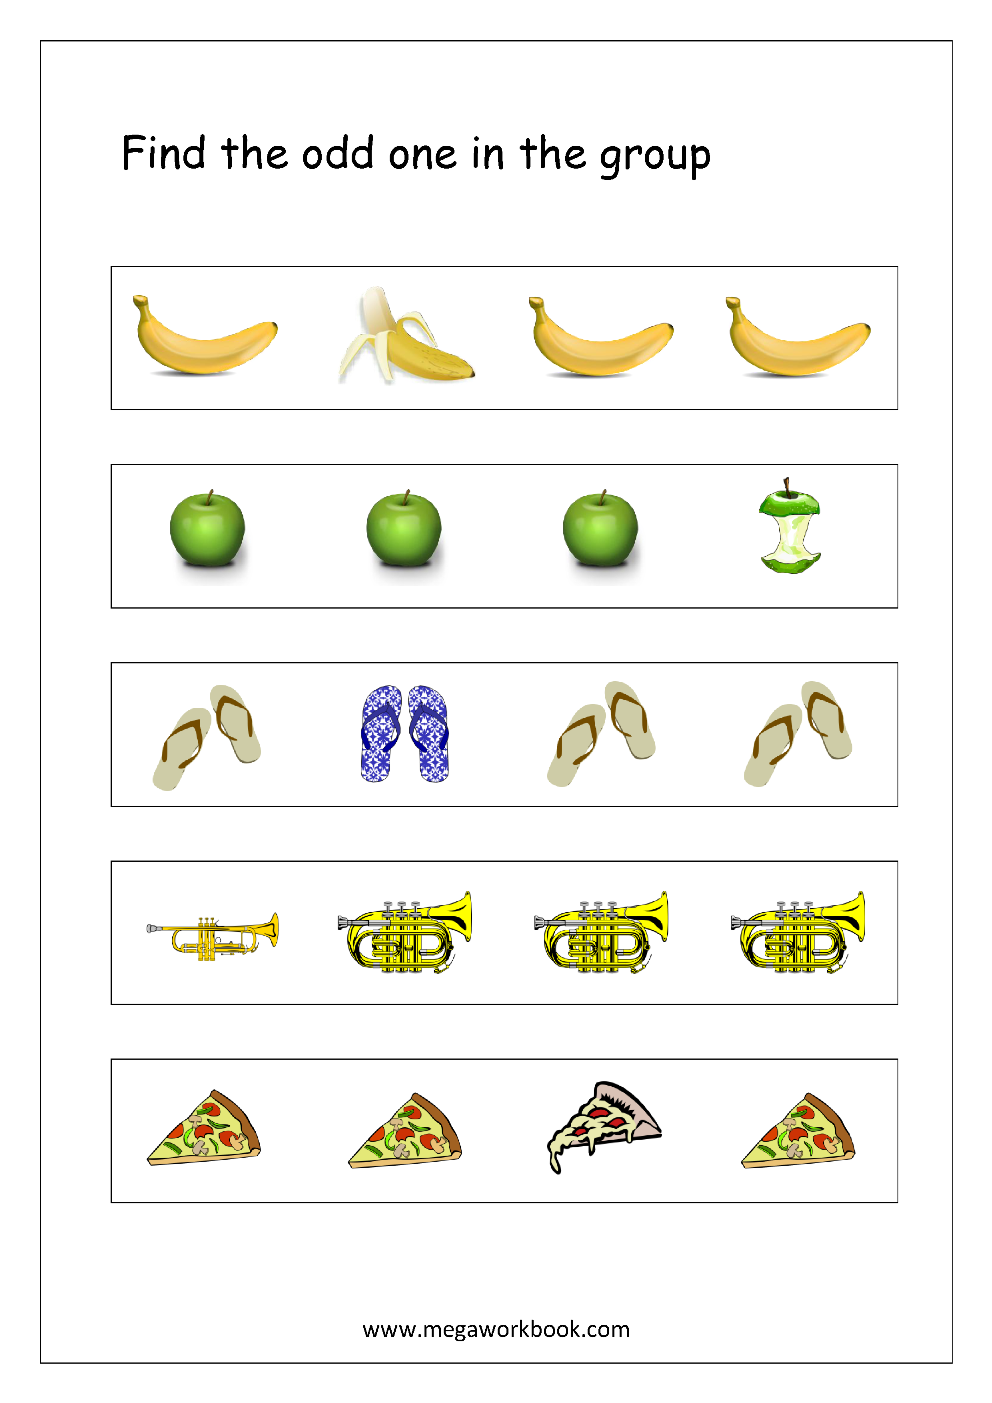 Free Printable Odd One Out Worksheets - Logical Thinking ...